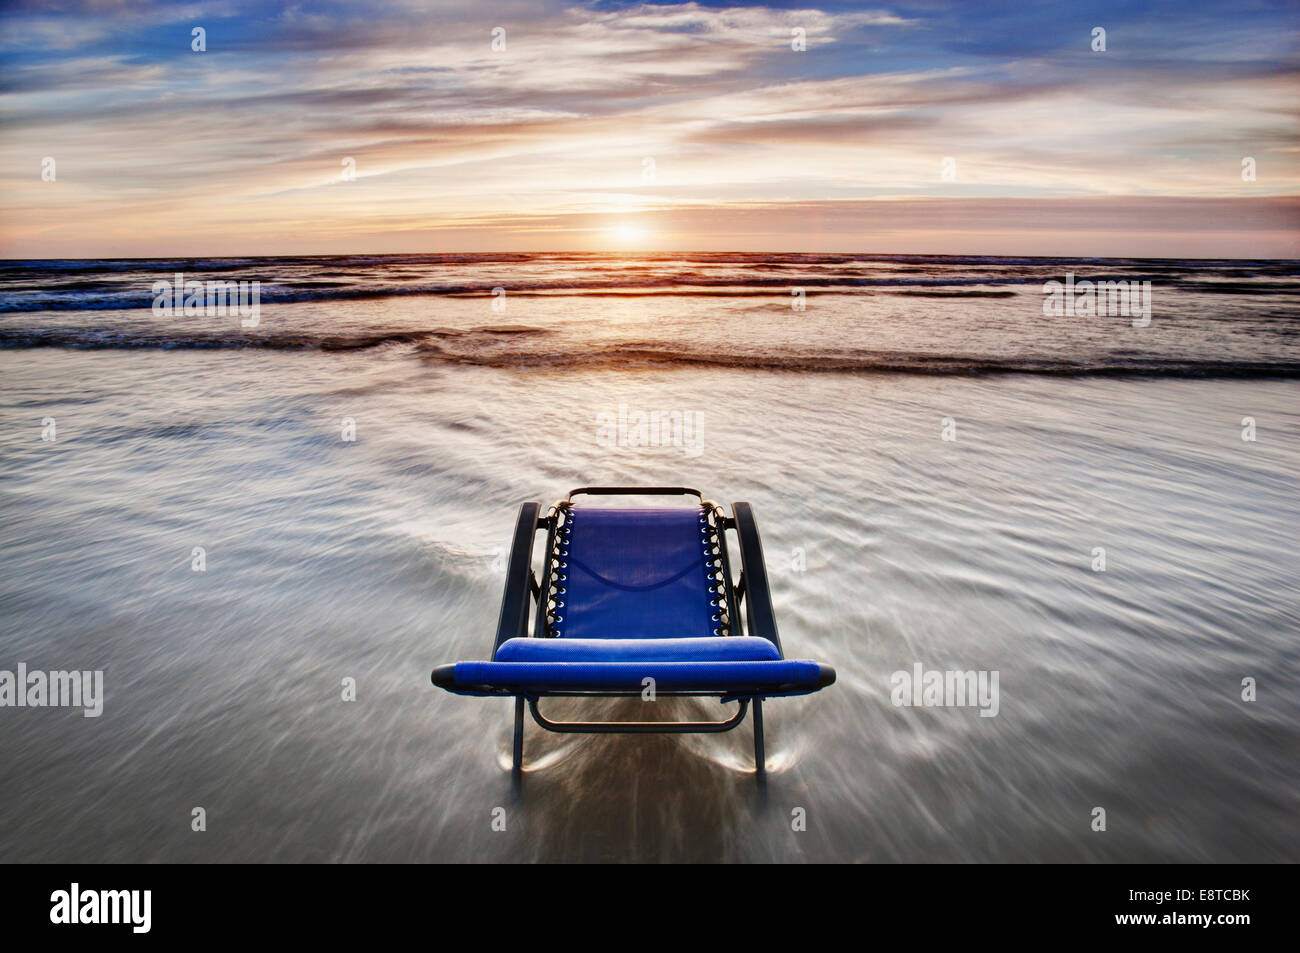 Deck chair overlooking sunset on beach - Stock Image